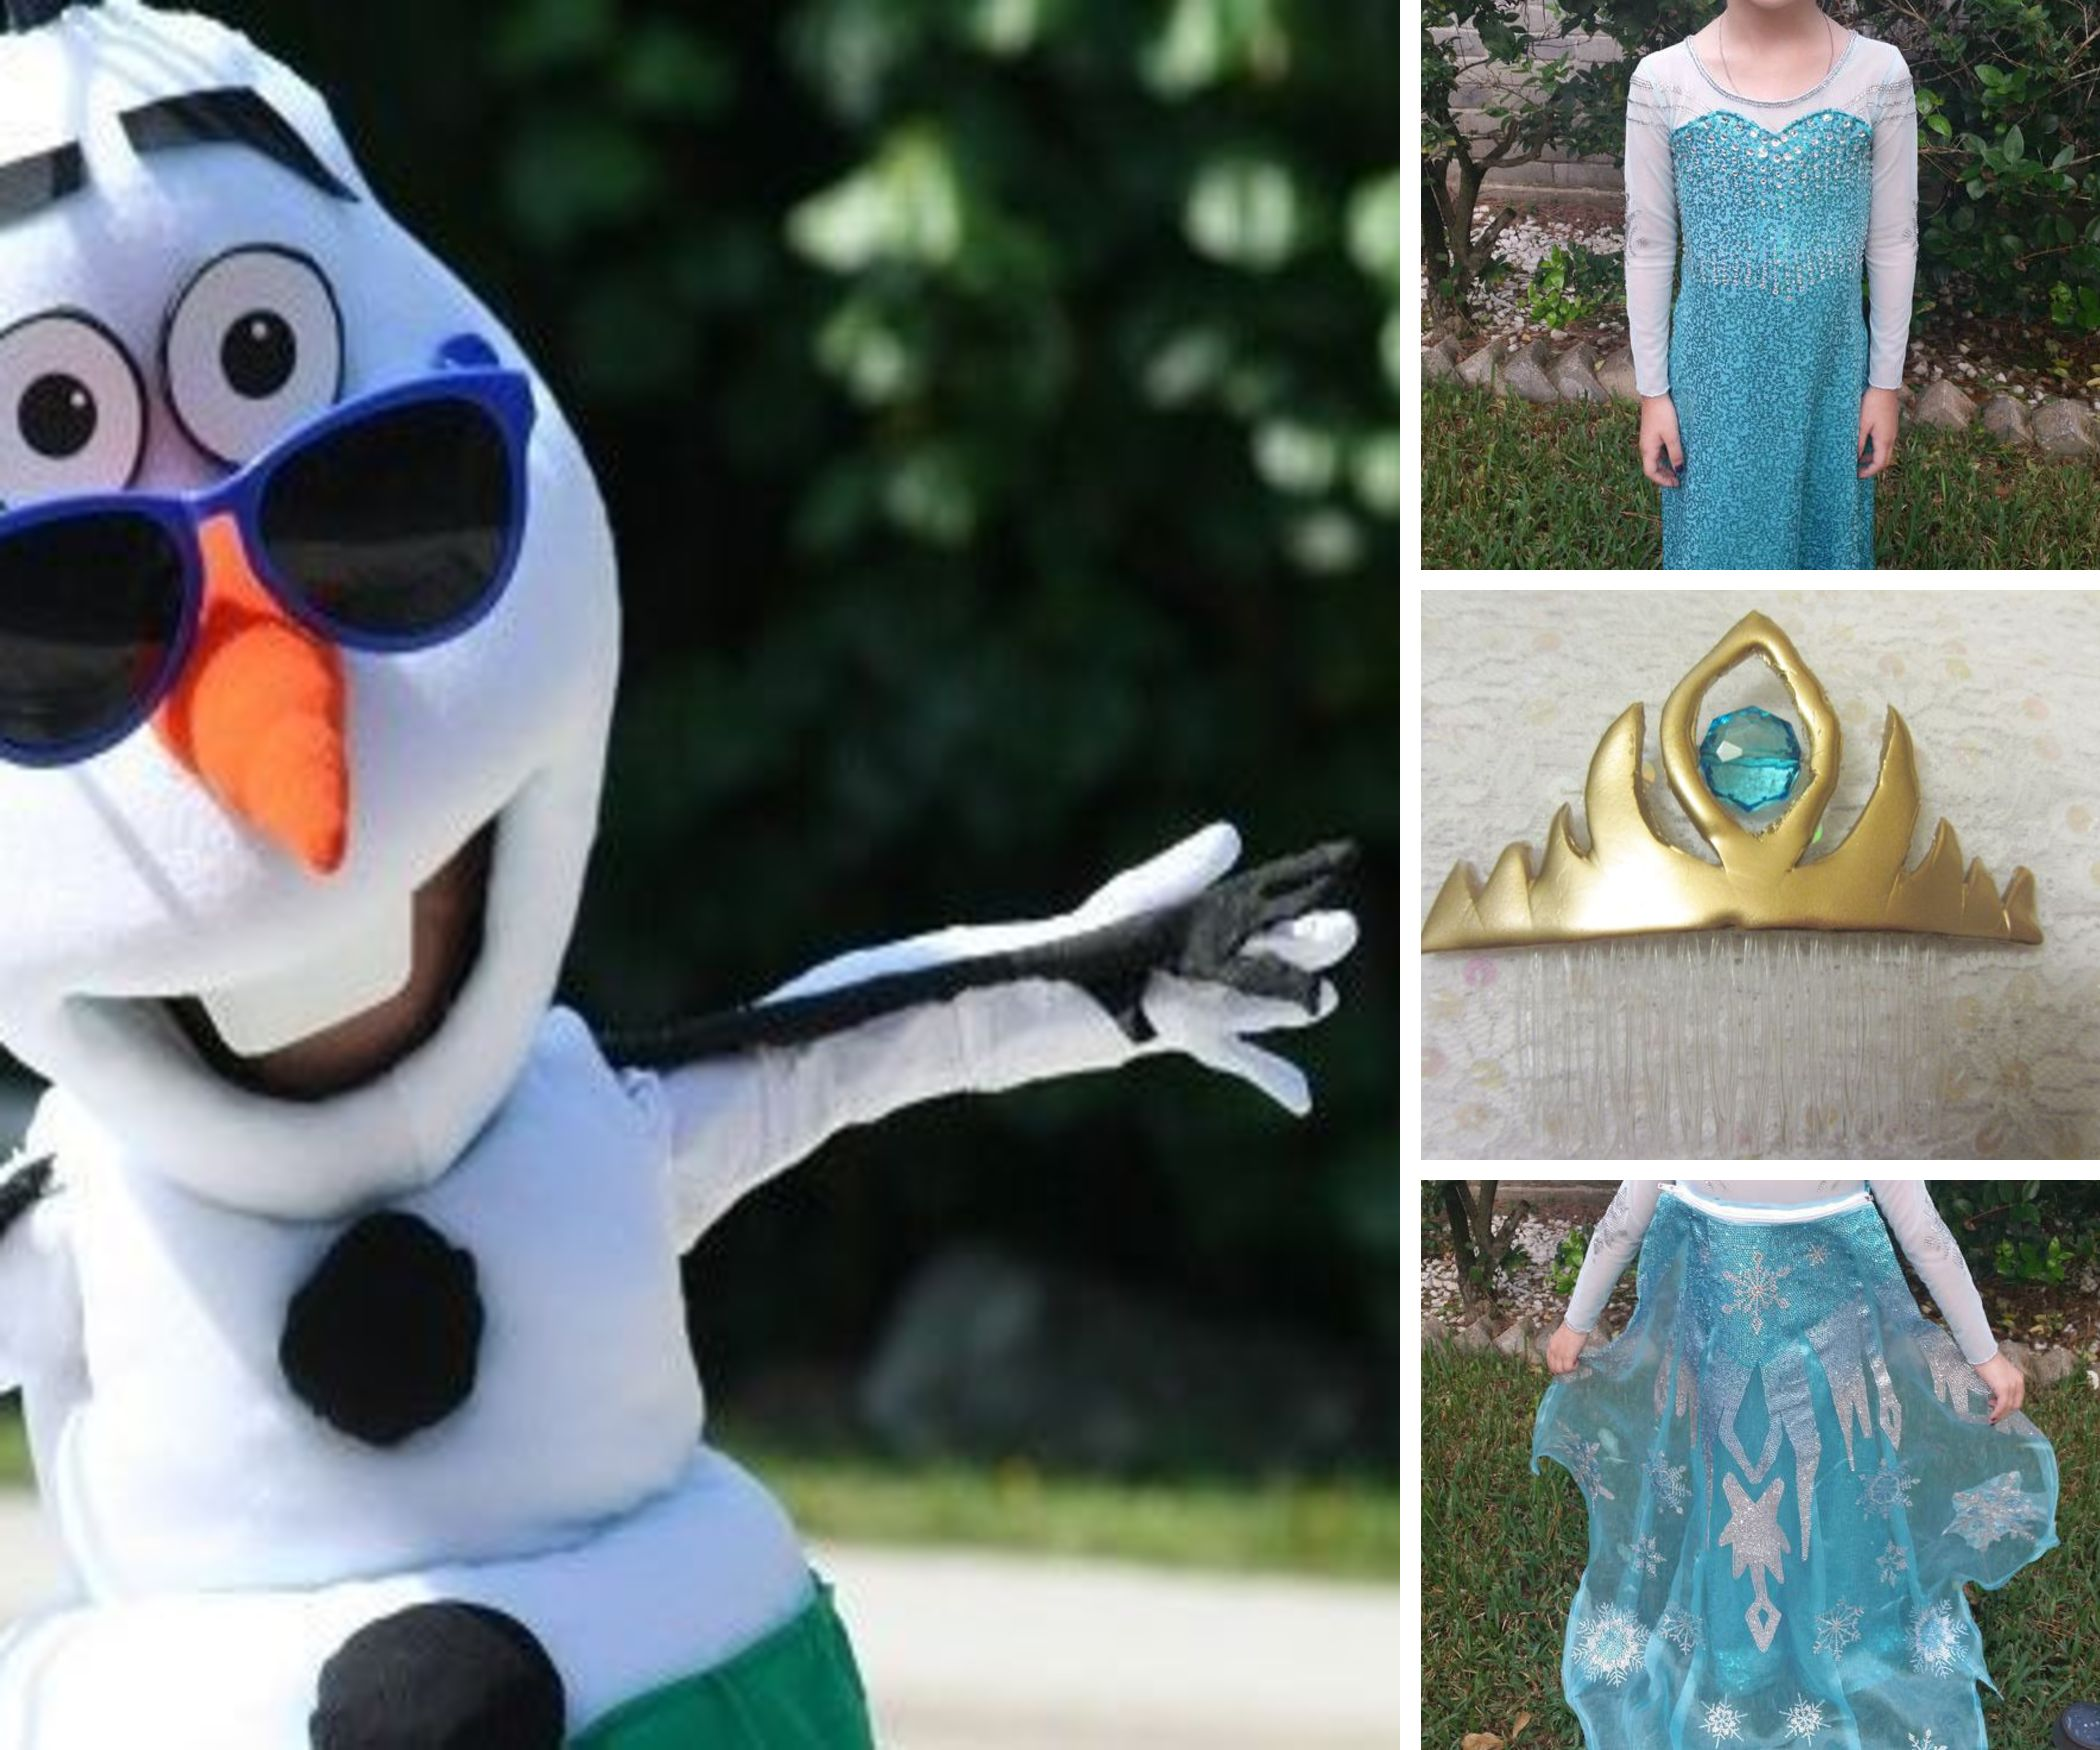 Frozen Costumes: Olaf, Elsa, Sven, and More